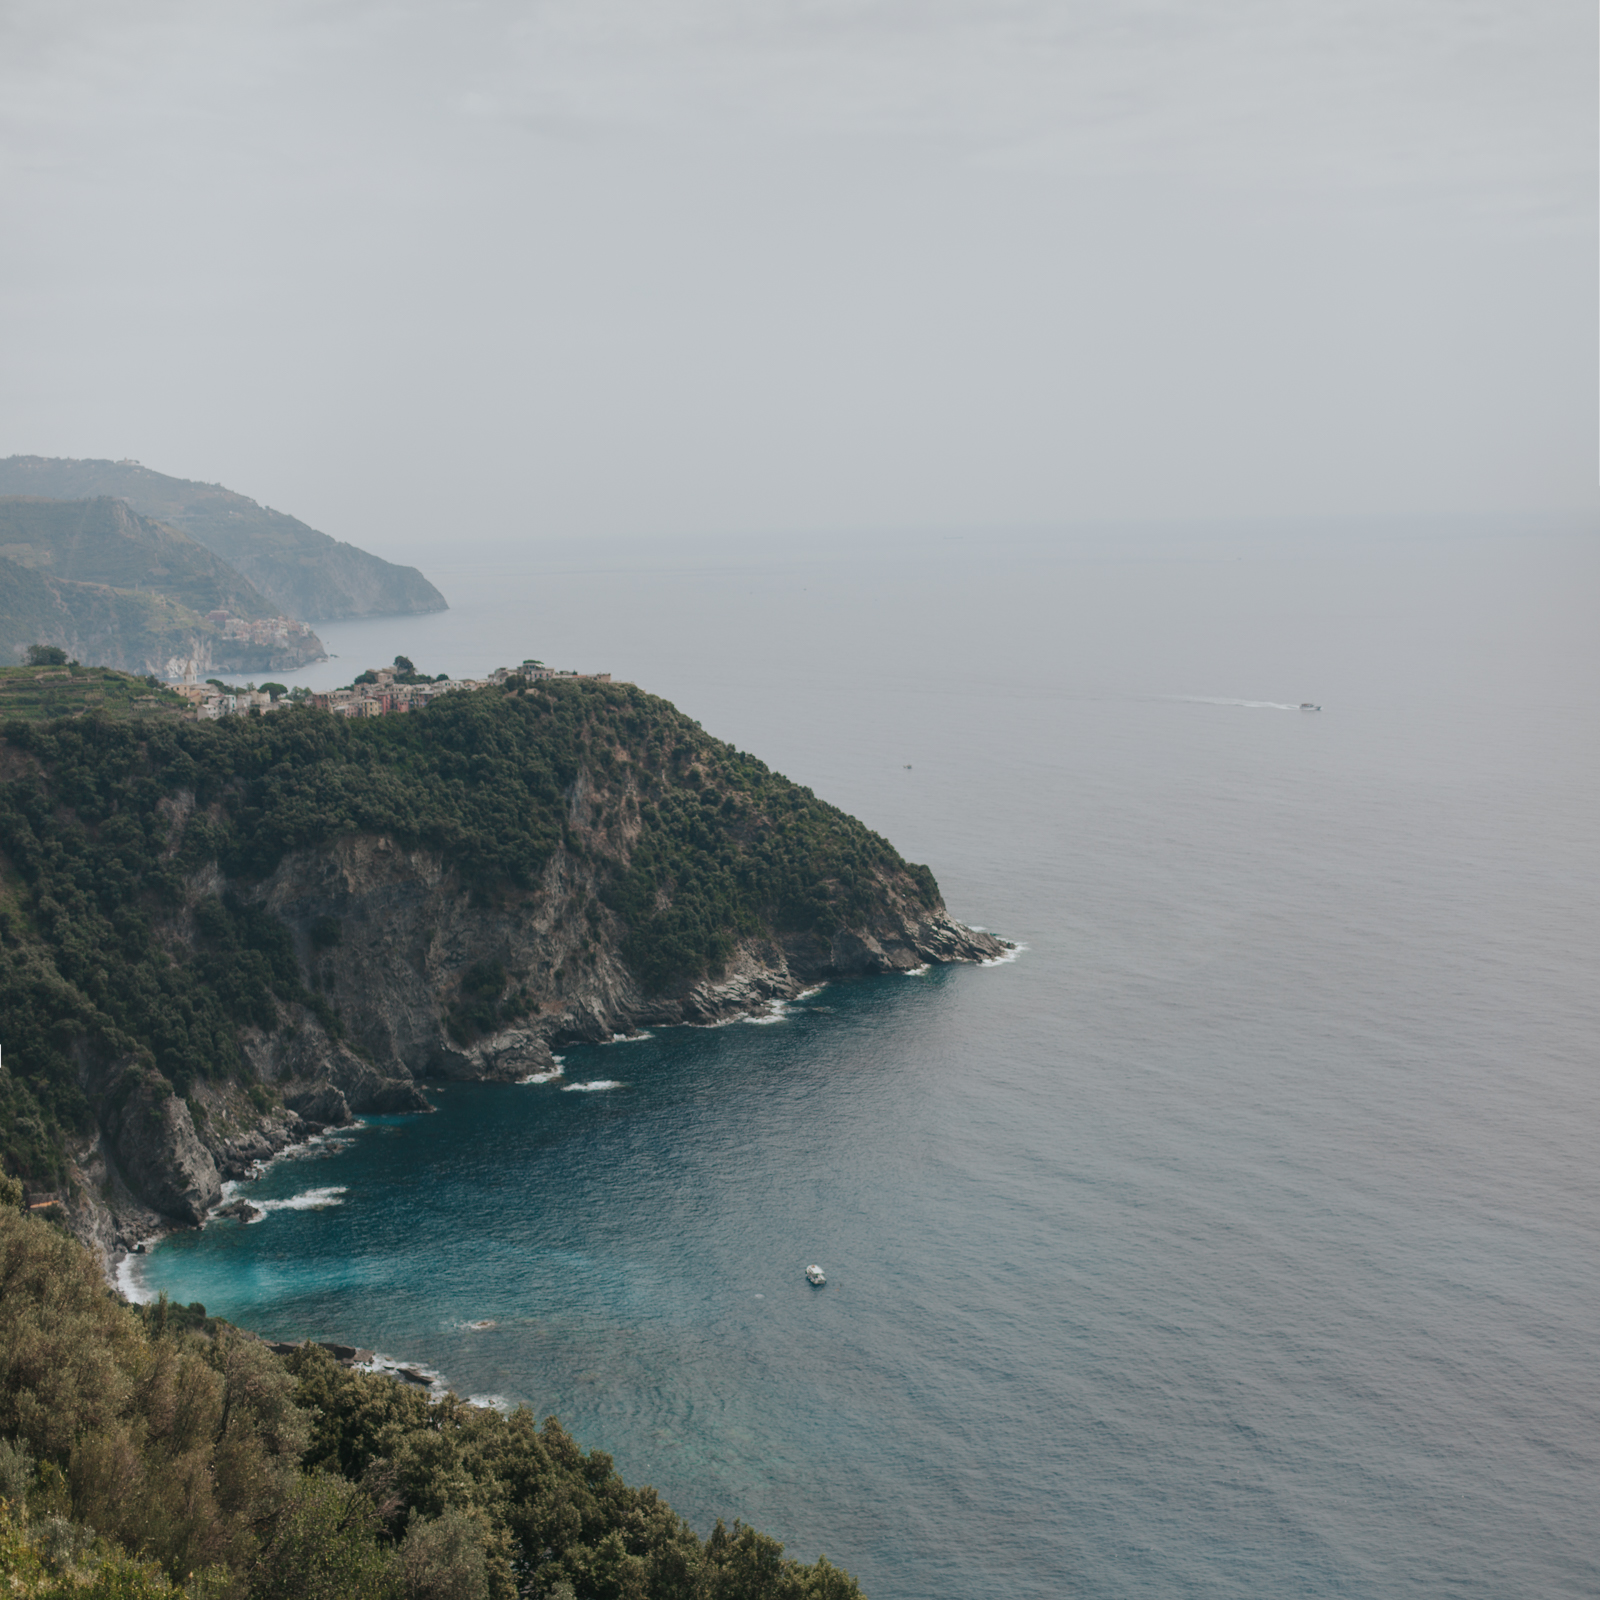 View of Corniglia, Italy from the hiking trail above the ocean.